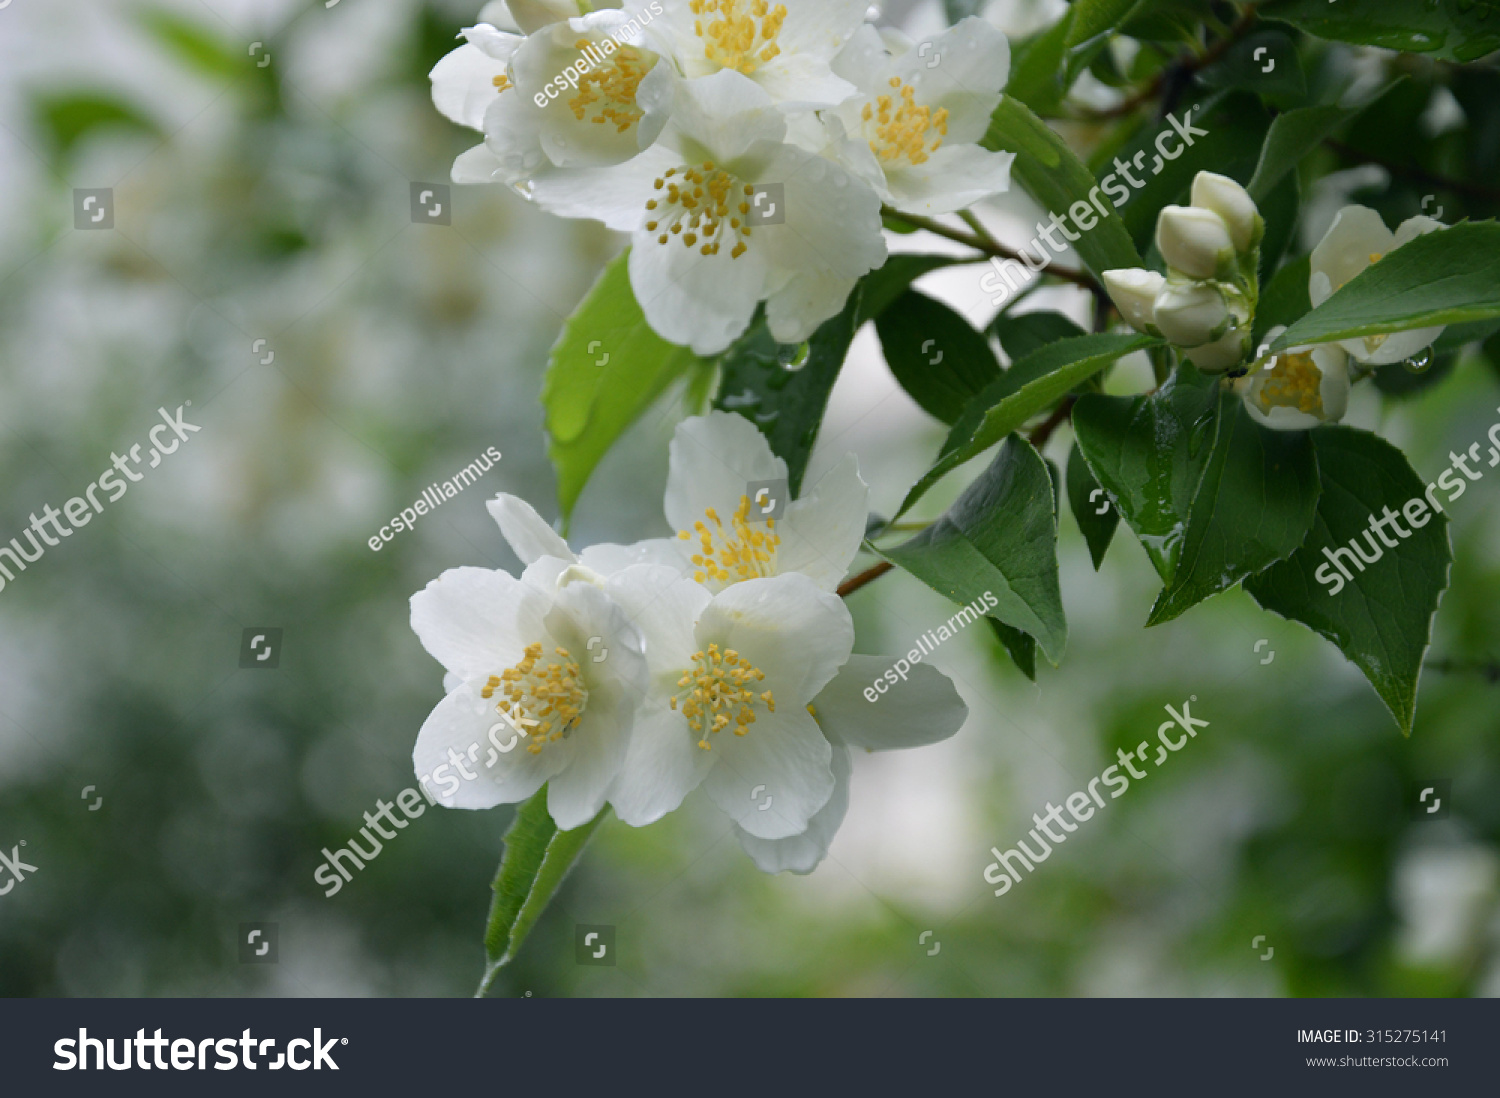 Blooming Jasmine White Flowers On Bush Stock Photo Royalty Free